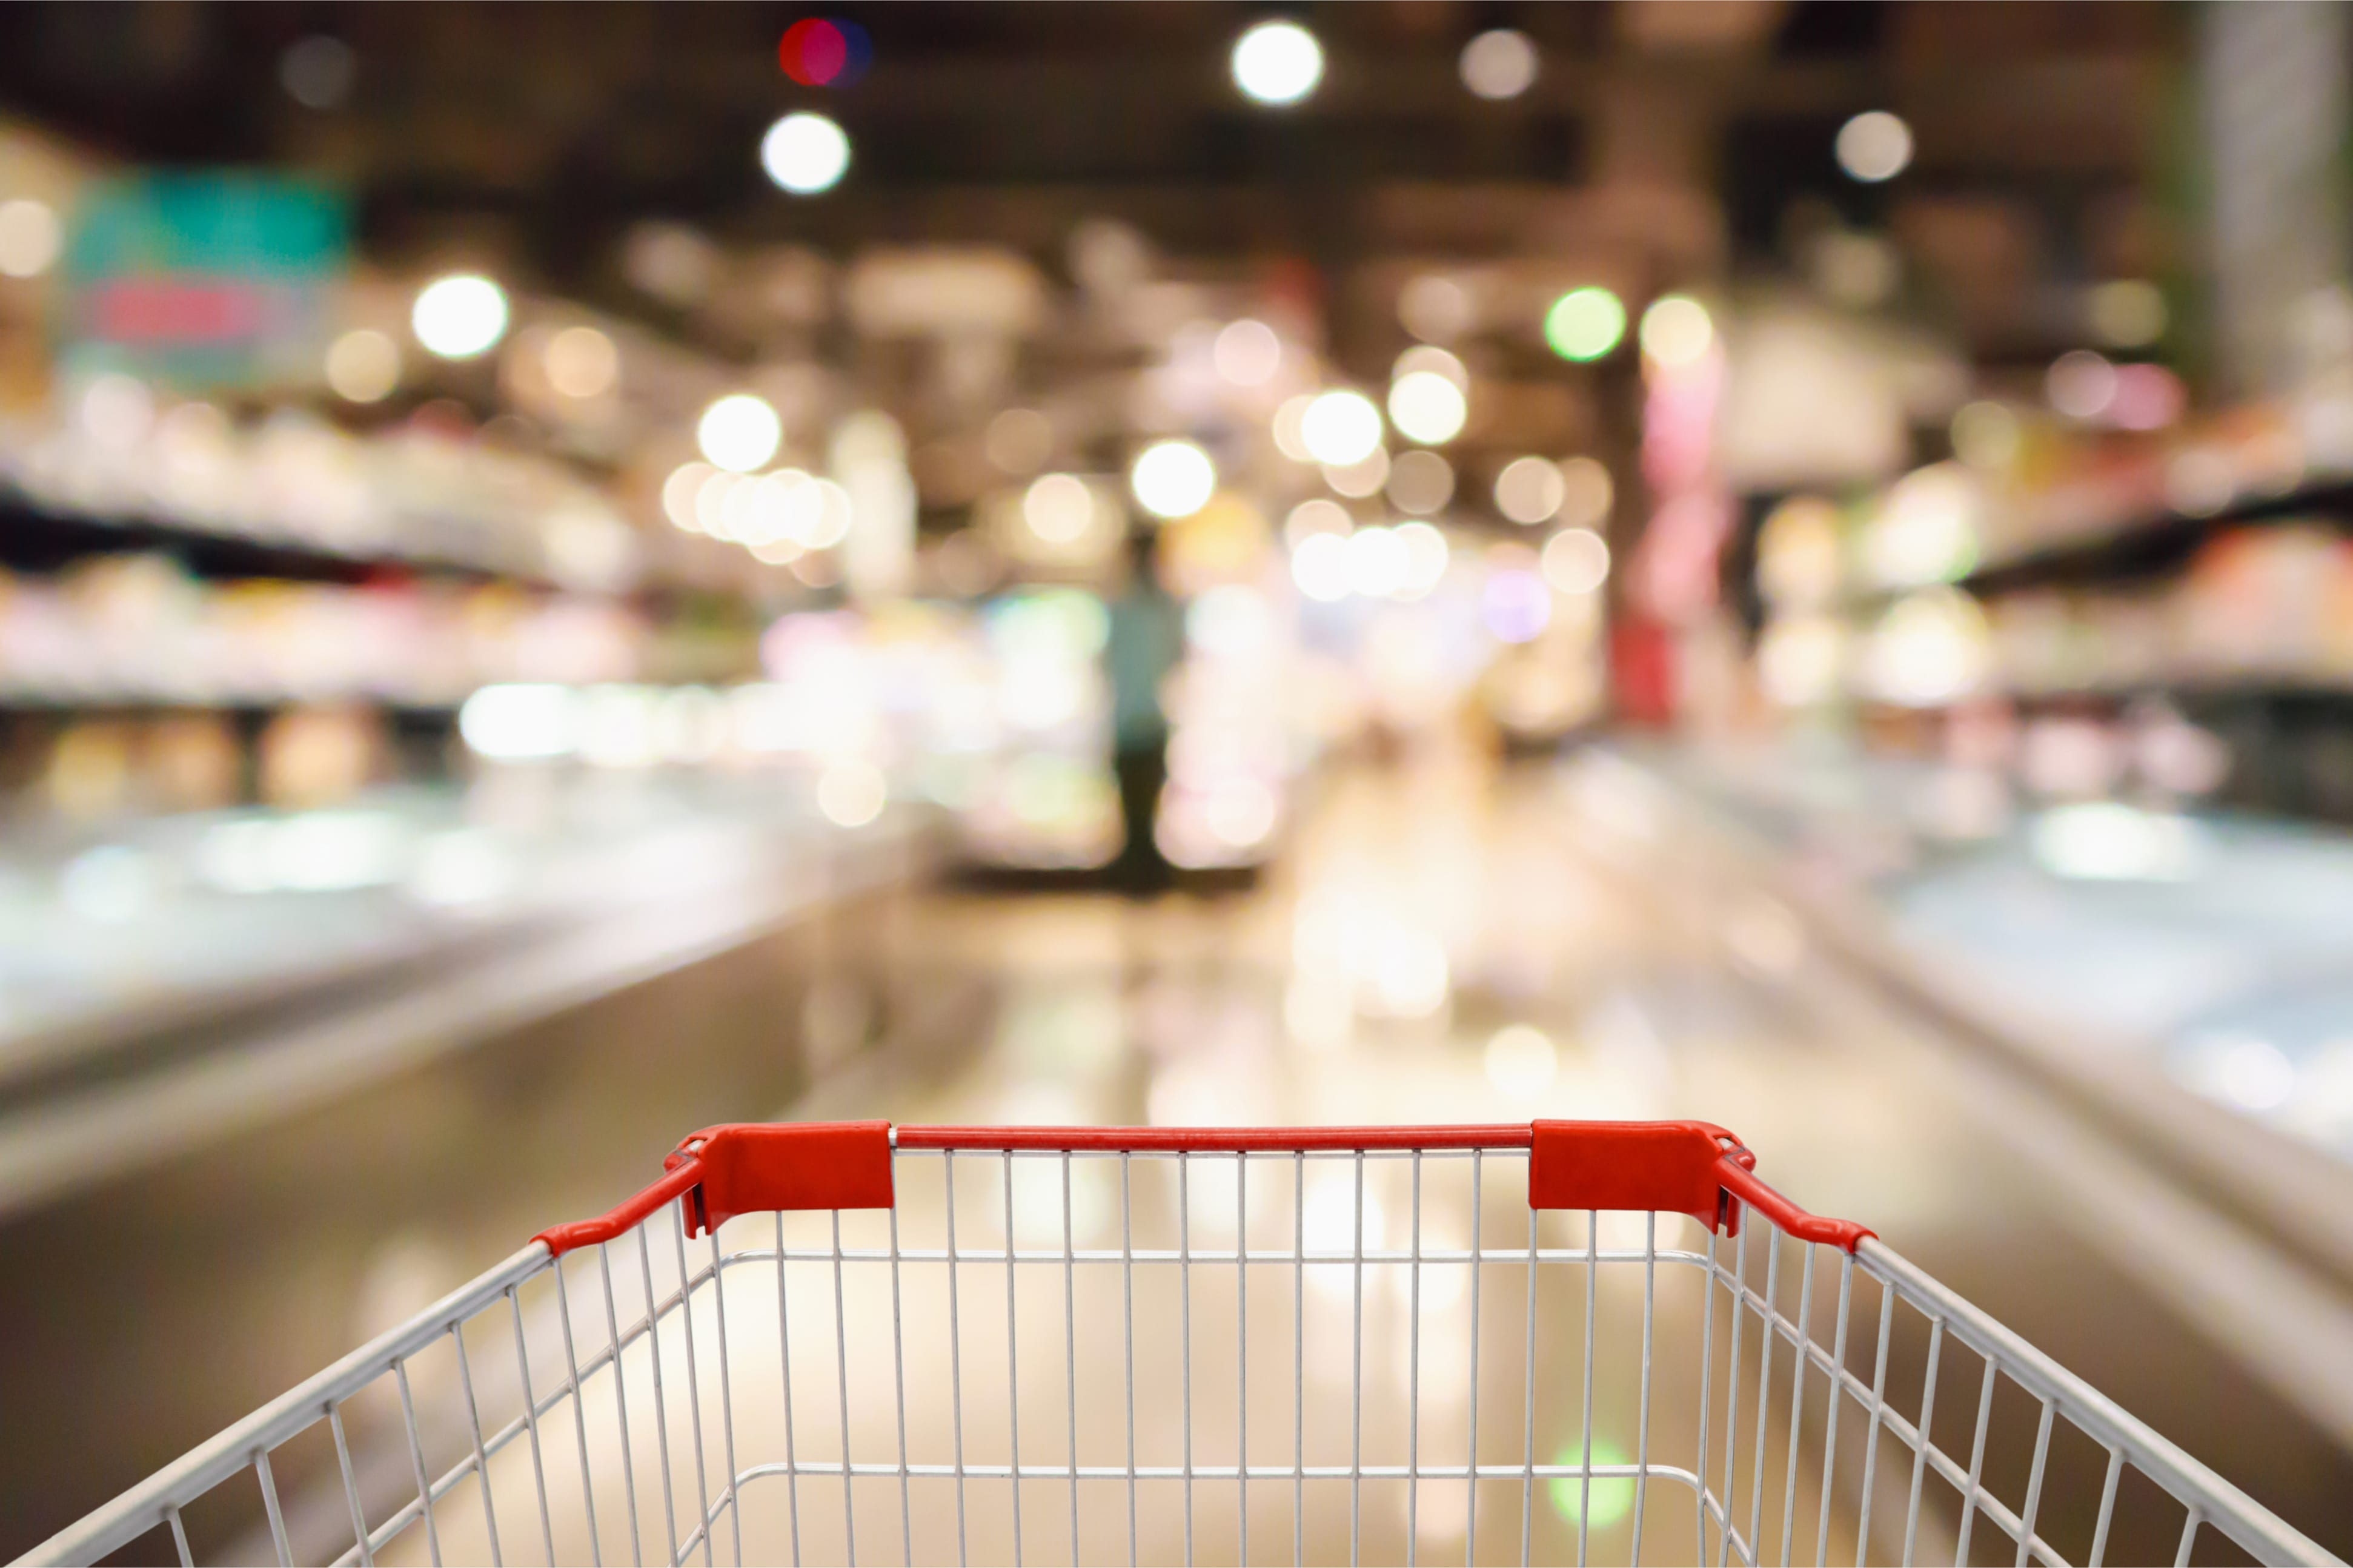 Experts believe it may be time for grocery stores to stop letting people shop inside